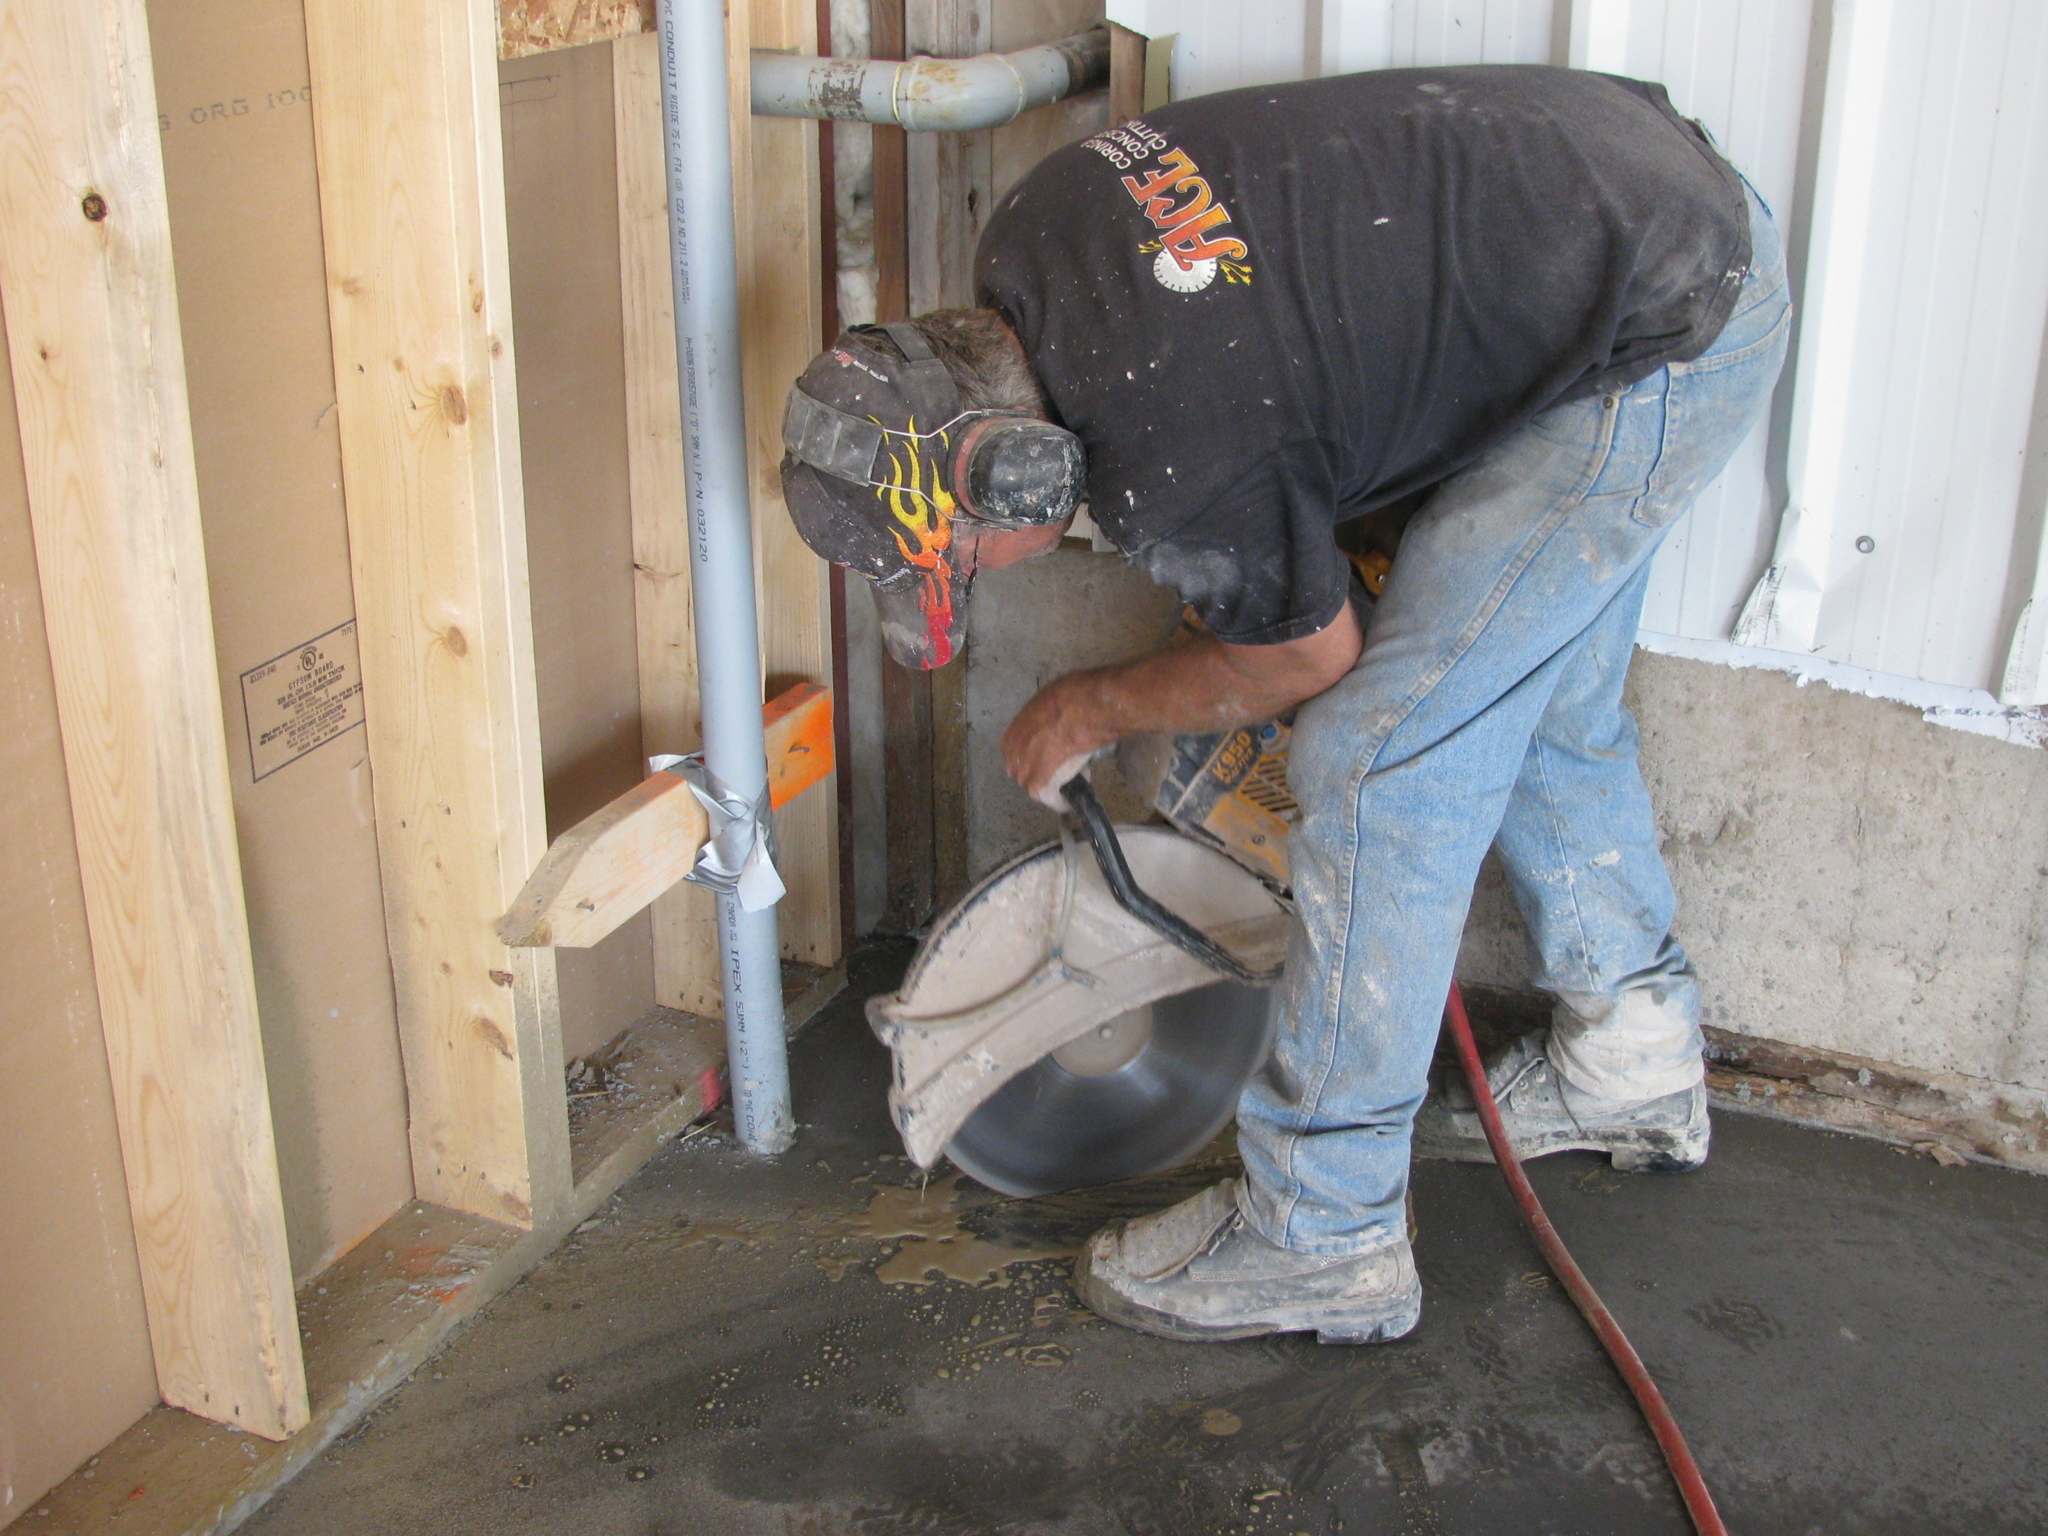 Concrete Contractor in AB Airdrie T4A 1S1 Ace Coring & Concrete Cutting 1119 Thorburn Dr SE  (403)968-6750